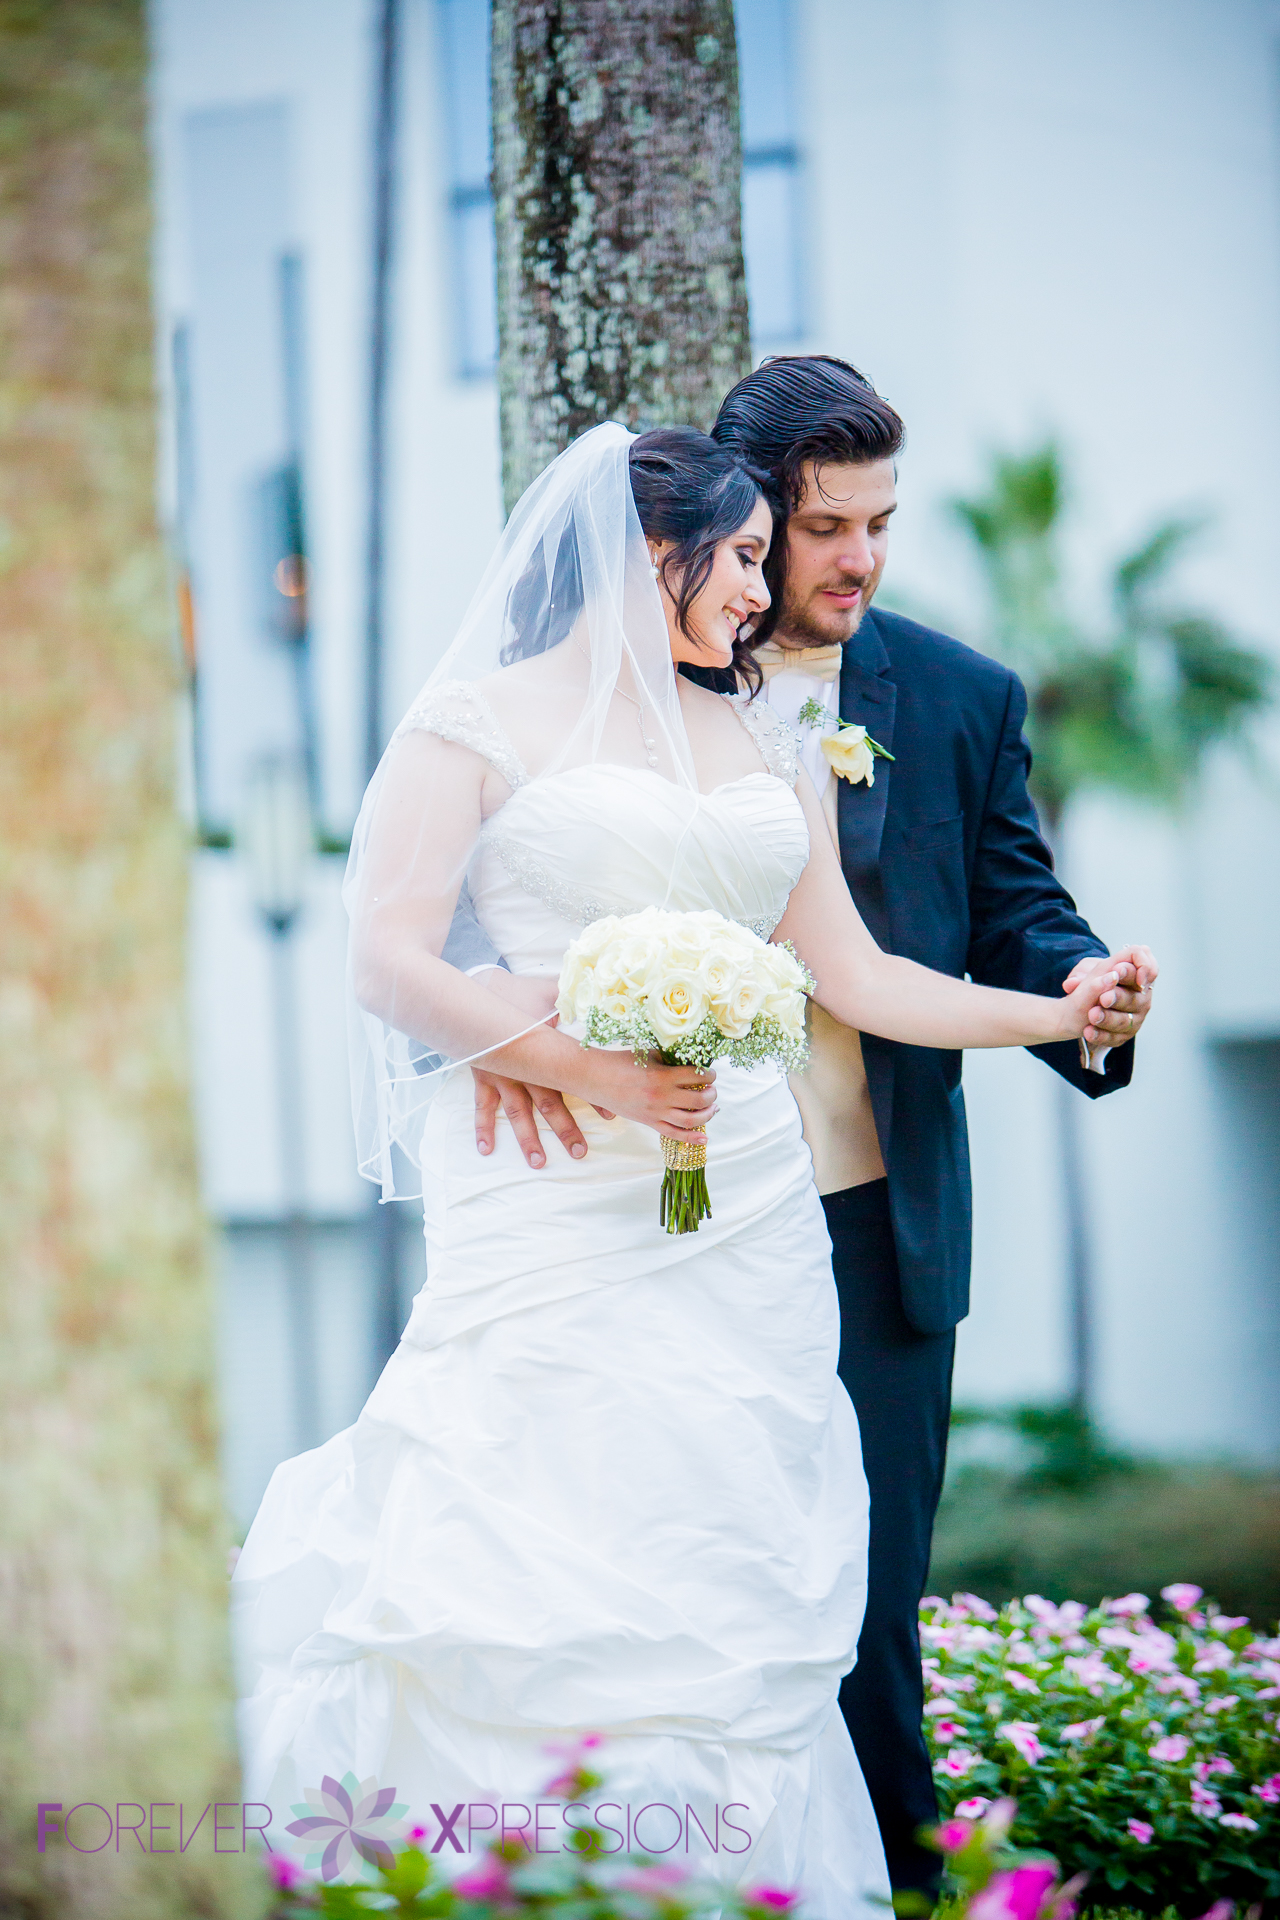 Forever_Xpressions_Wedding_Photography_Monteverde_Bella_Collina-0523